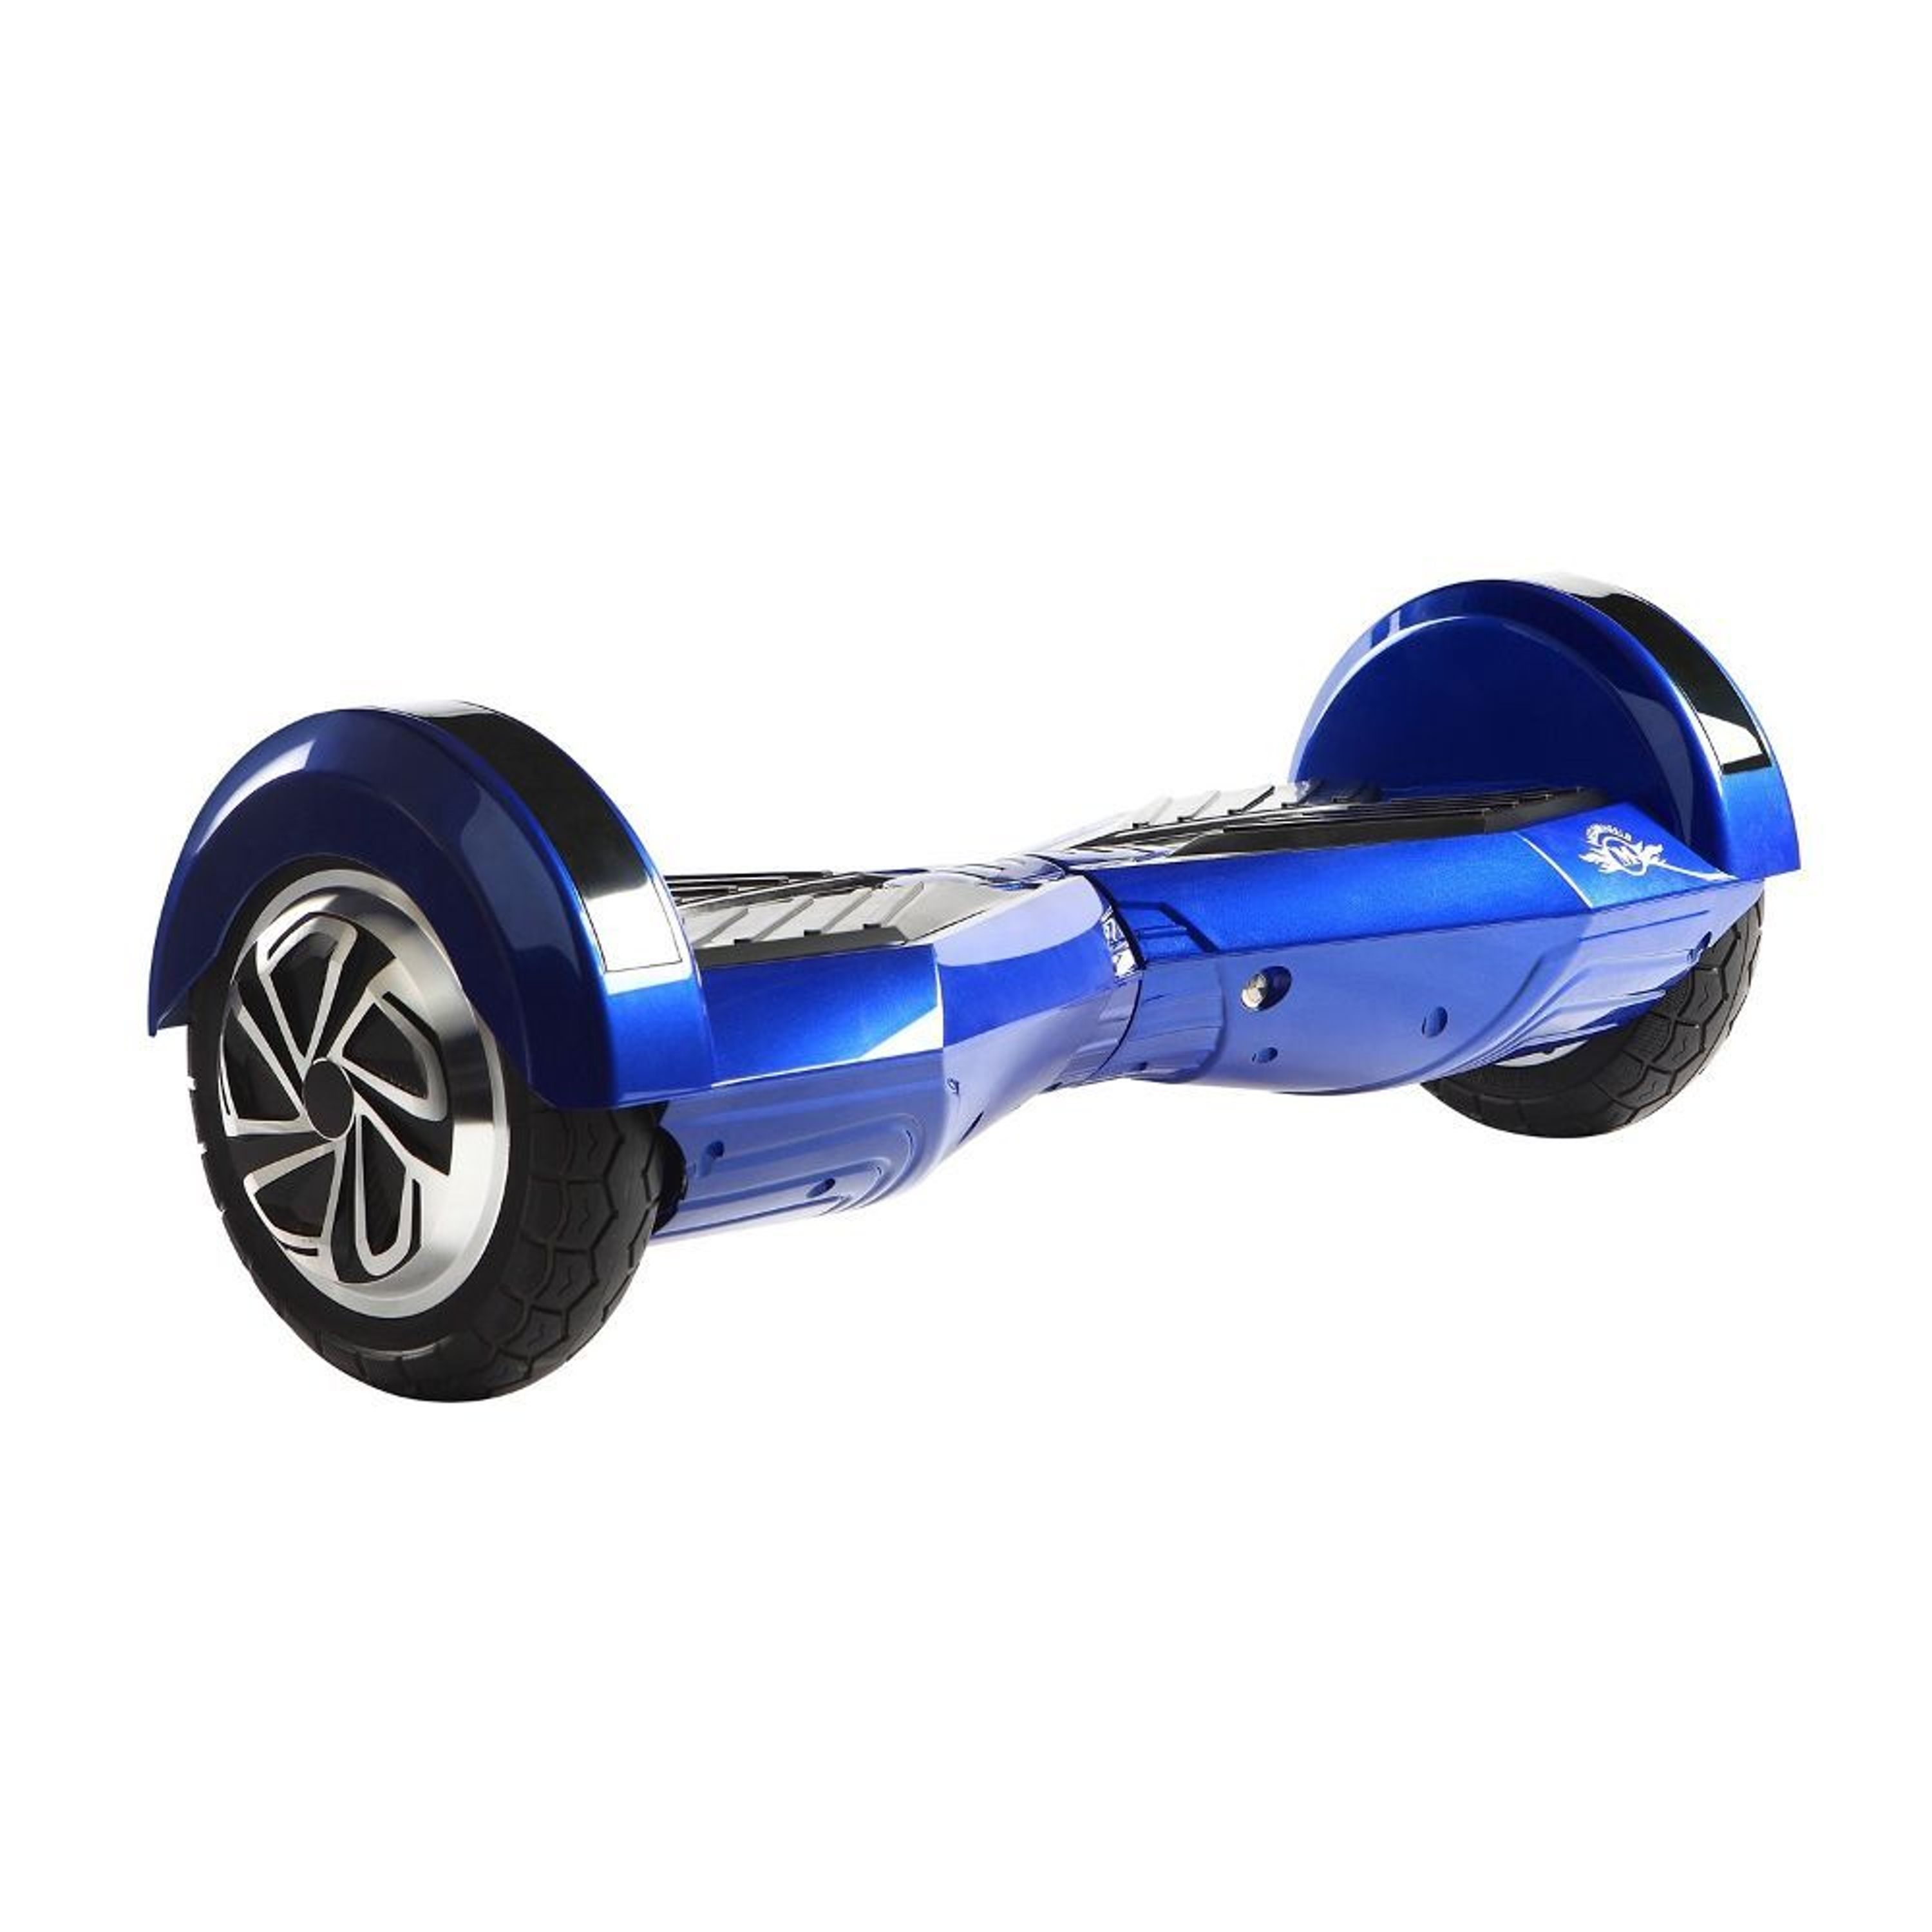 10 8 6 5 zoll zertifizierte hoverboard self balance scooter bluetooth samsung akku kaufen bei. Black Bedroom Furniture Sets. Home Design Ideas